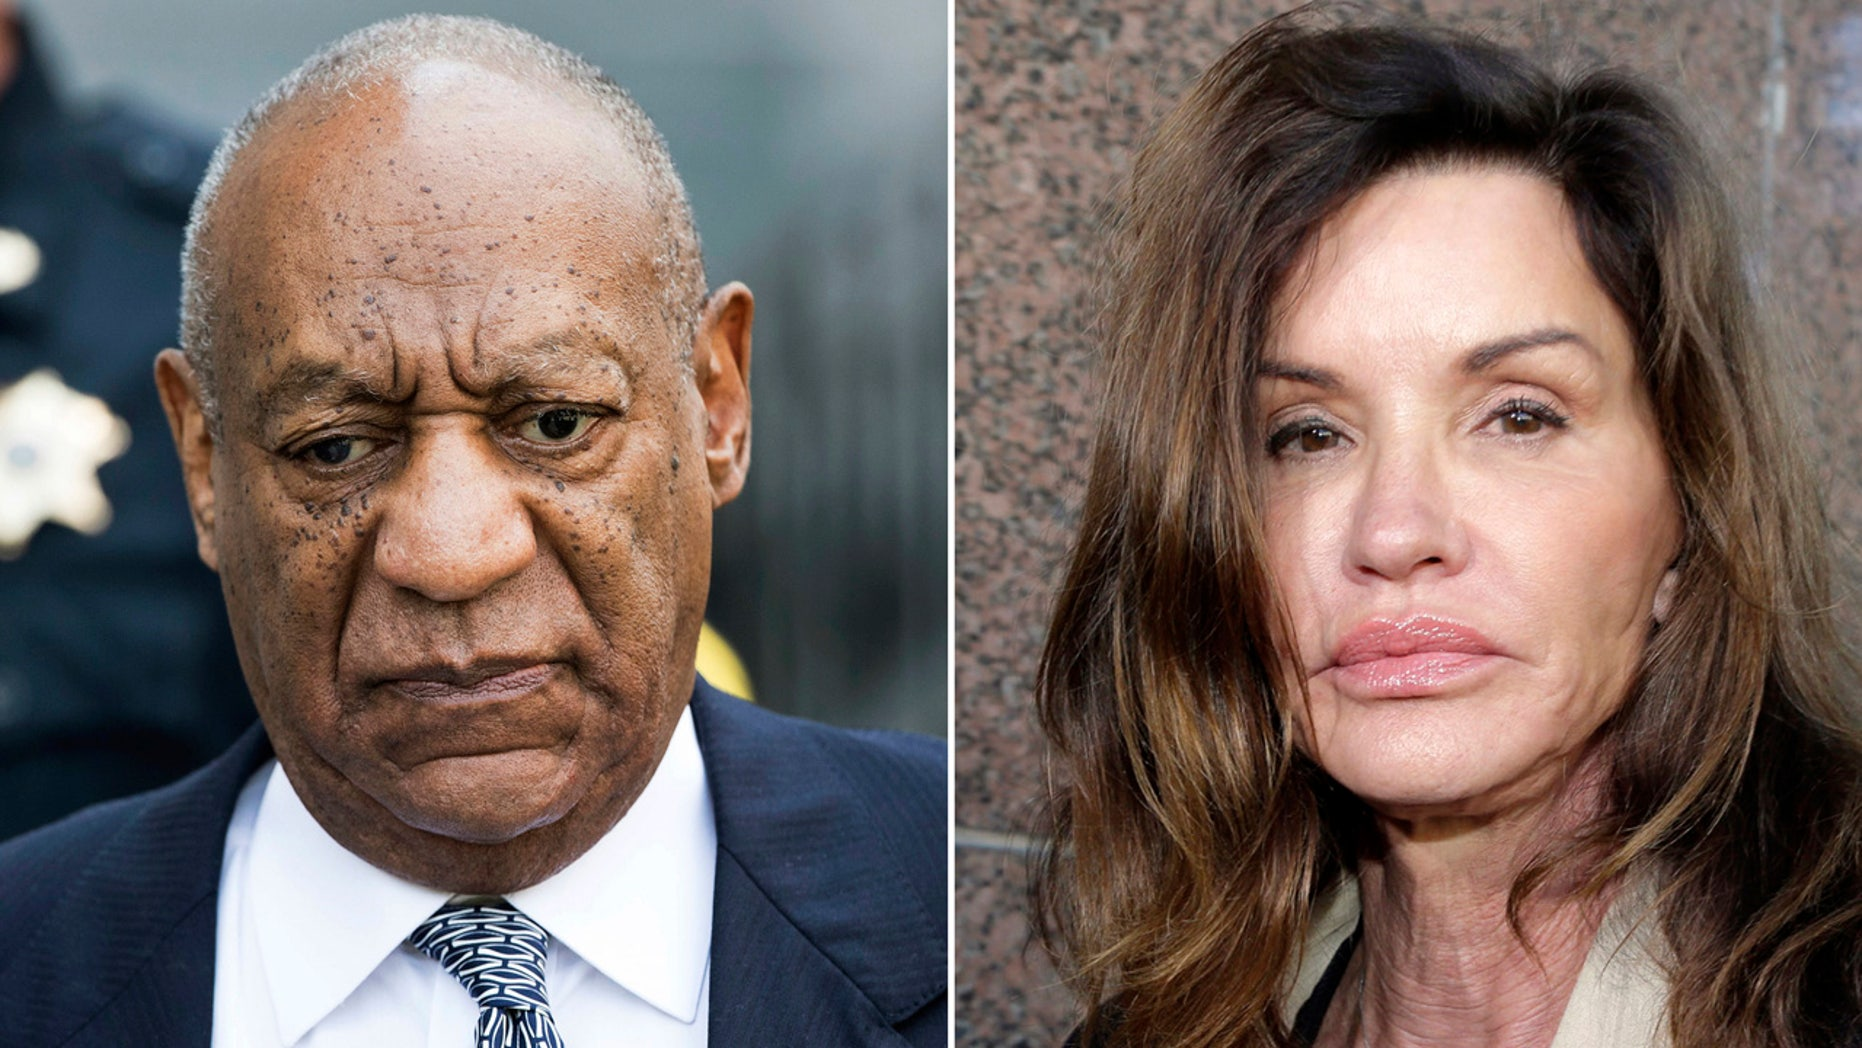 This combination photo shows Bill Cosby leaving Montgomery County Courthouse after a hearing in his sexual assault case in Norristown, Pa., on Aug. 22, 2017, left, and model Janice Dickinson leaving Los Angeles Superior Court after a judge ruled her defamation lawsuit against Bill Cosby on March 29, 2016. Dickinson's defamation lawsuit against Bill Cosby can move forward after the California Supreme Court refused an appeal from Cosby. The court said on its website Thursday that it was declining to review Cosby's appeal, which had put the case on hold. Dickinson said in 2014 that Cosby drugged and raped her in Lake Tahoe in 1982, then sued him after he and his representatives said her claims were false. (AP Photo)